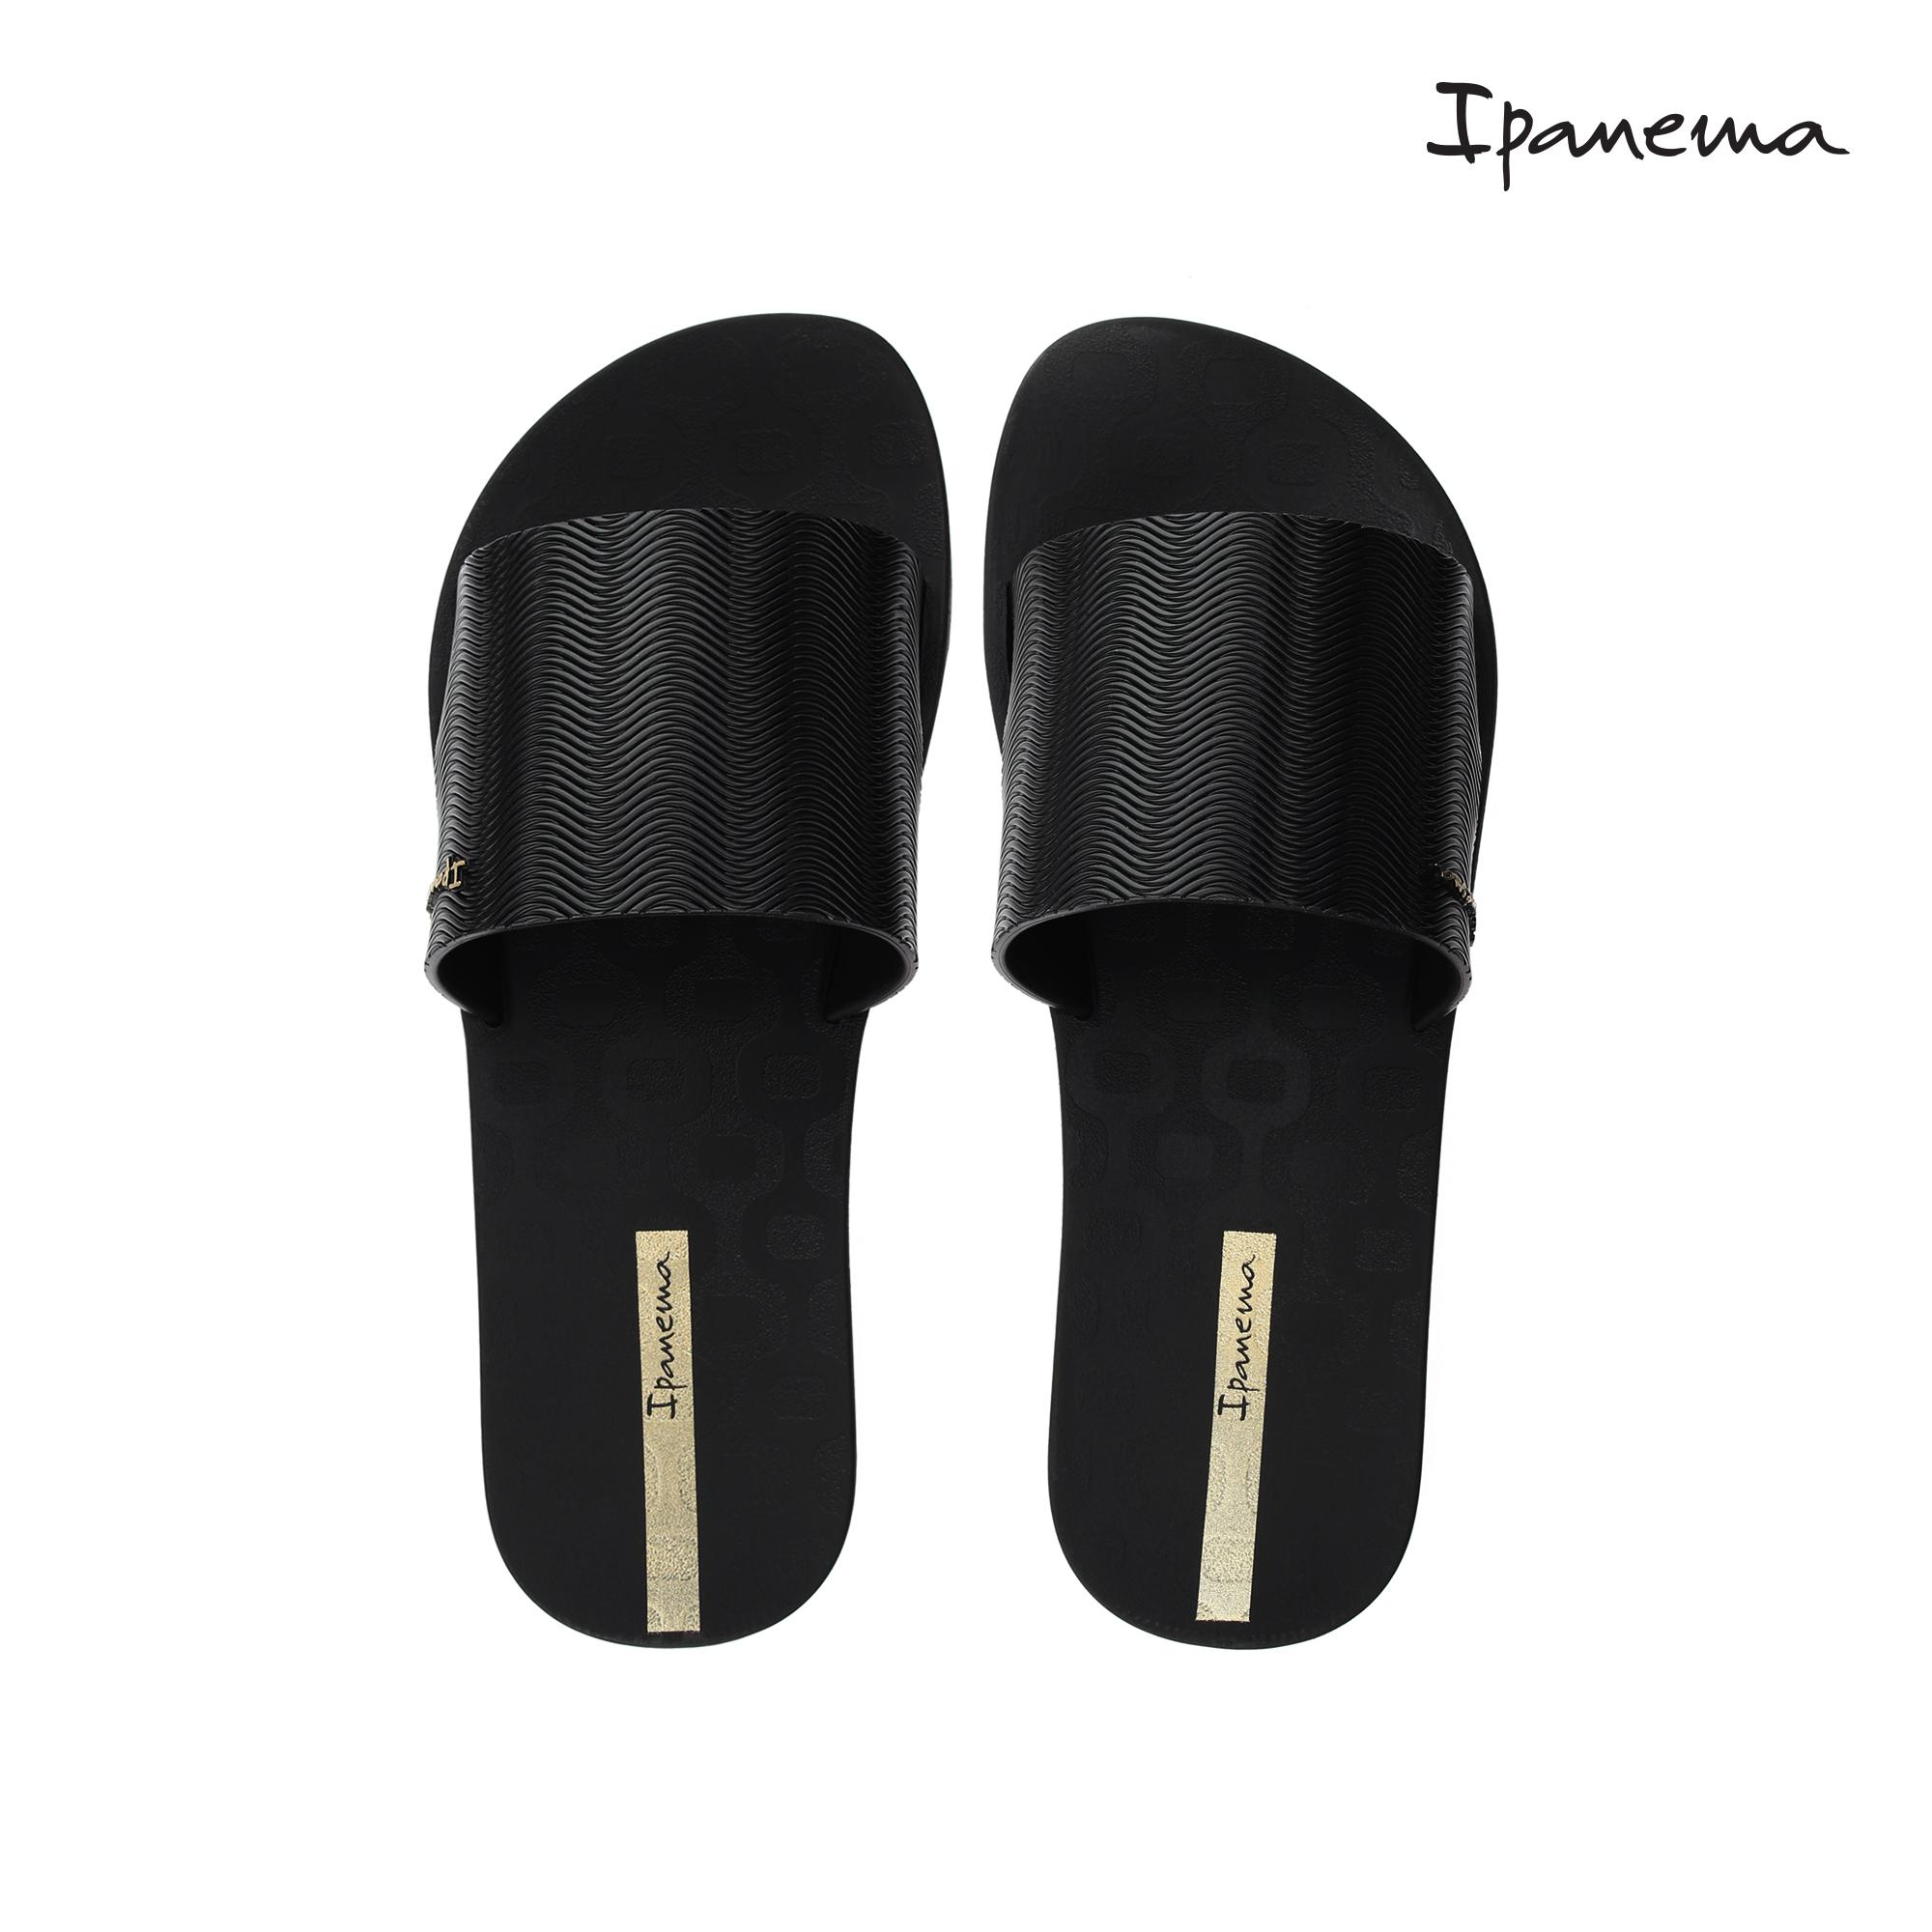 76f15f34438a65 Ipanema Philippines  Ipanema price list - Ipanema Flip Flop   Sandals for  sale